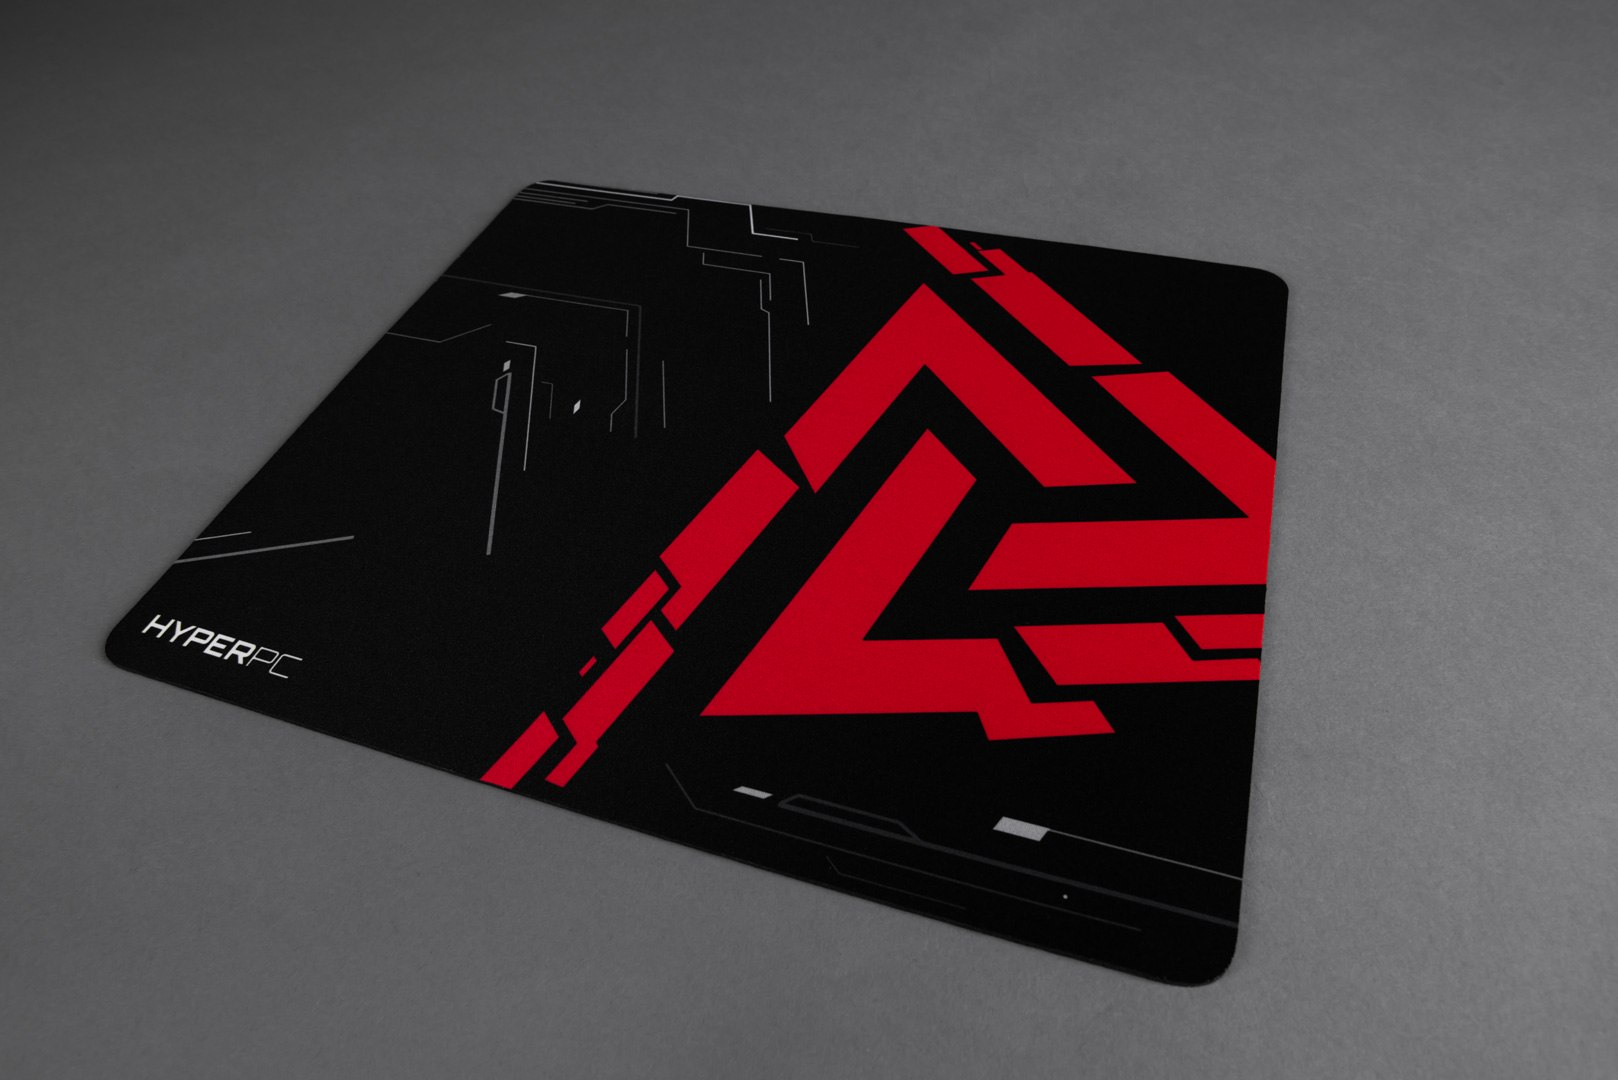 hyperpc mouse pad 03